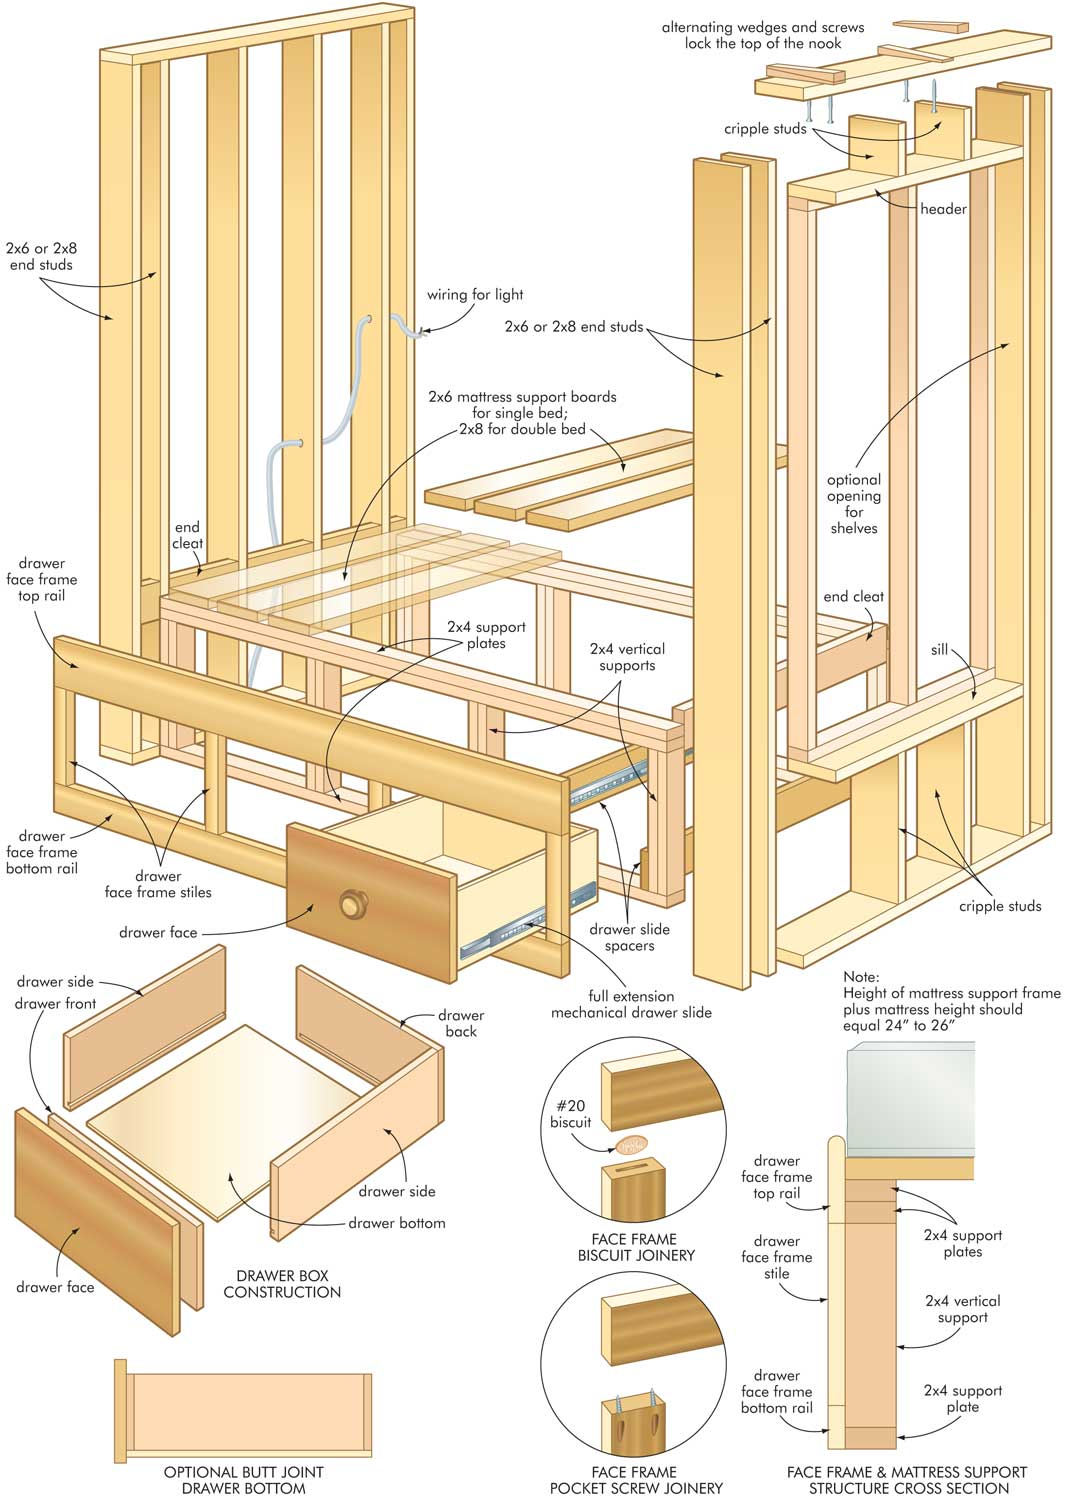 Woodworking building plans pdf woodworking for House bed frame plans